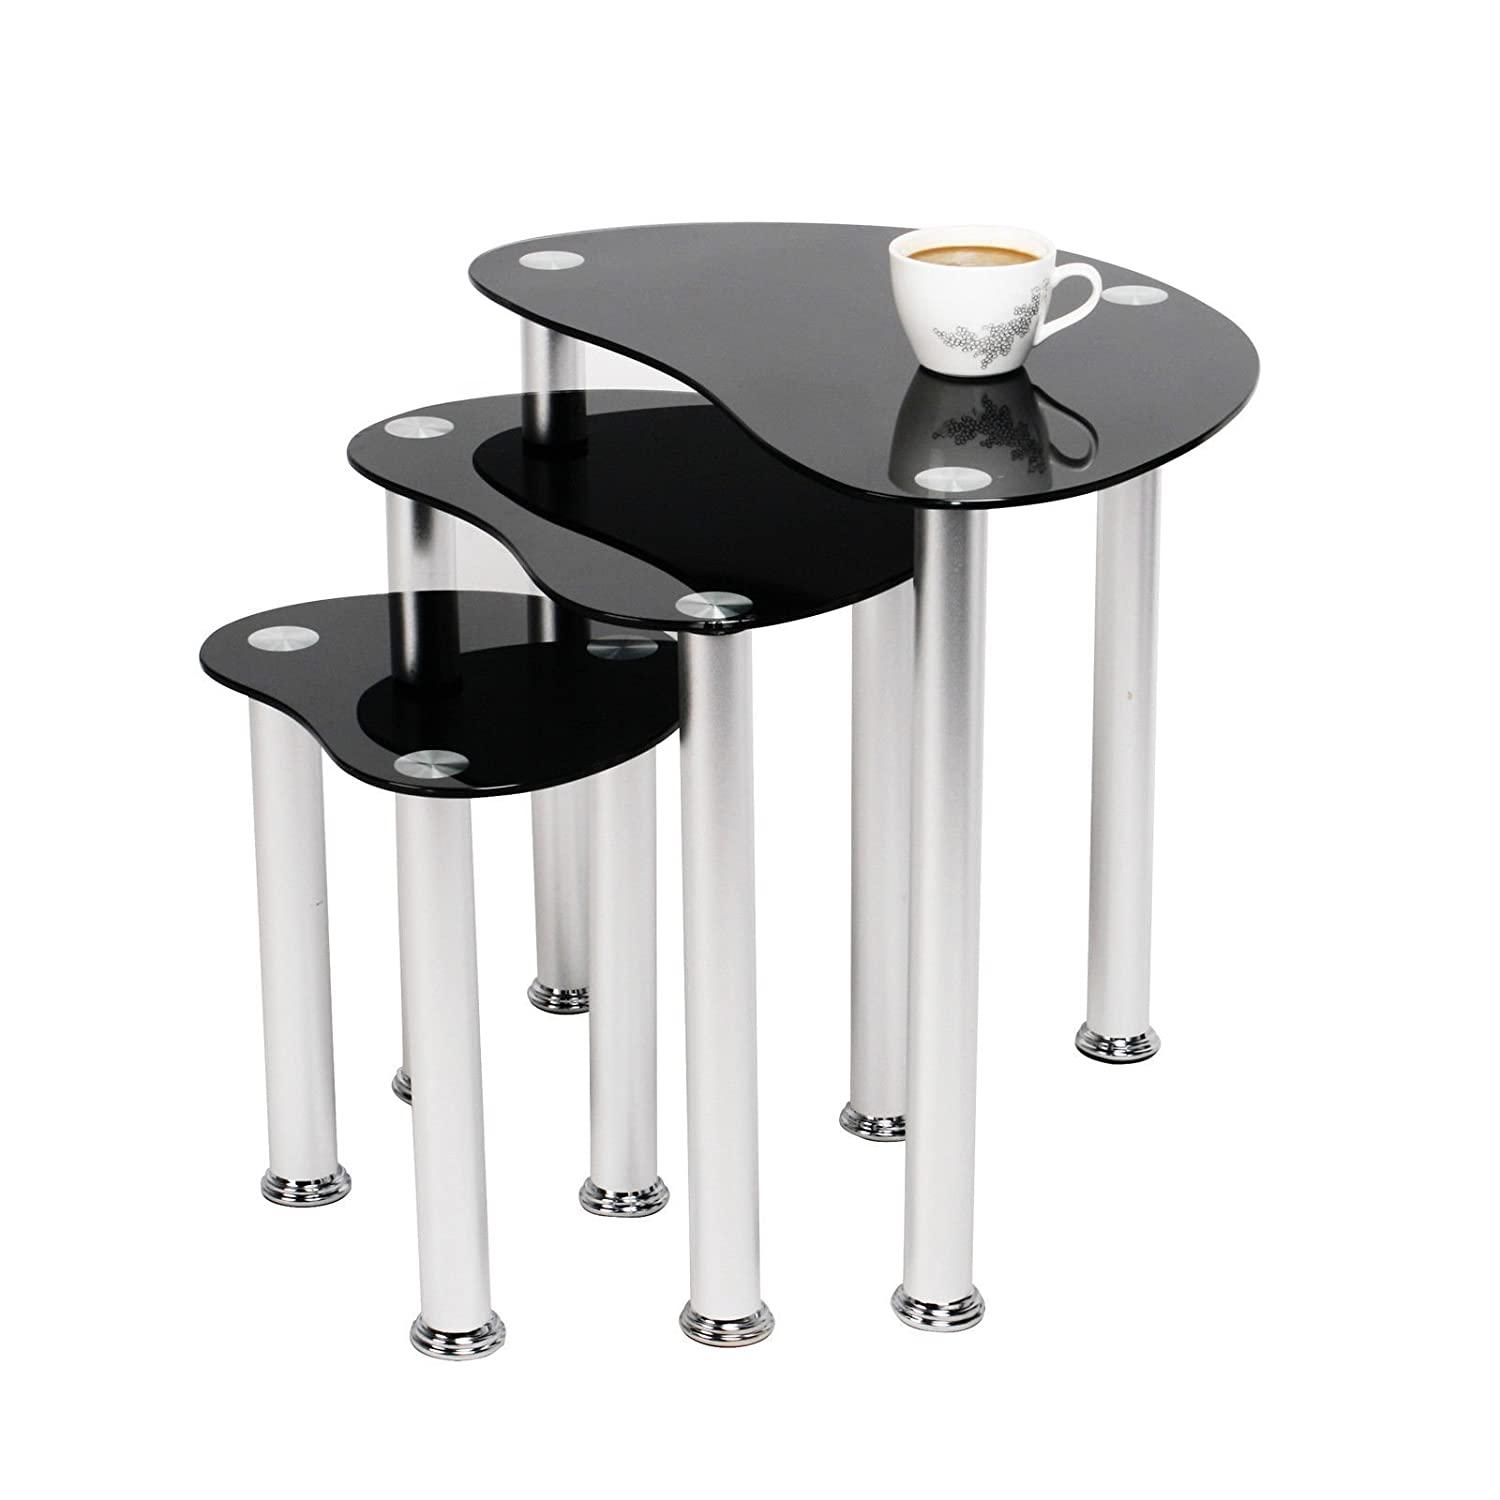 NEST OF 3 COFFEE TABLES SIDE END TABLE BLACK GLASS SET Amazon